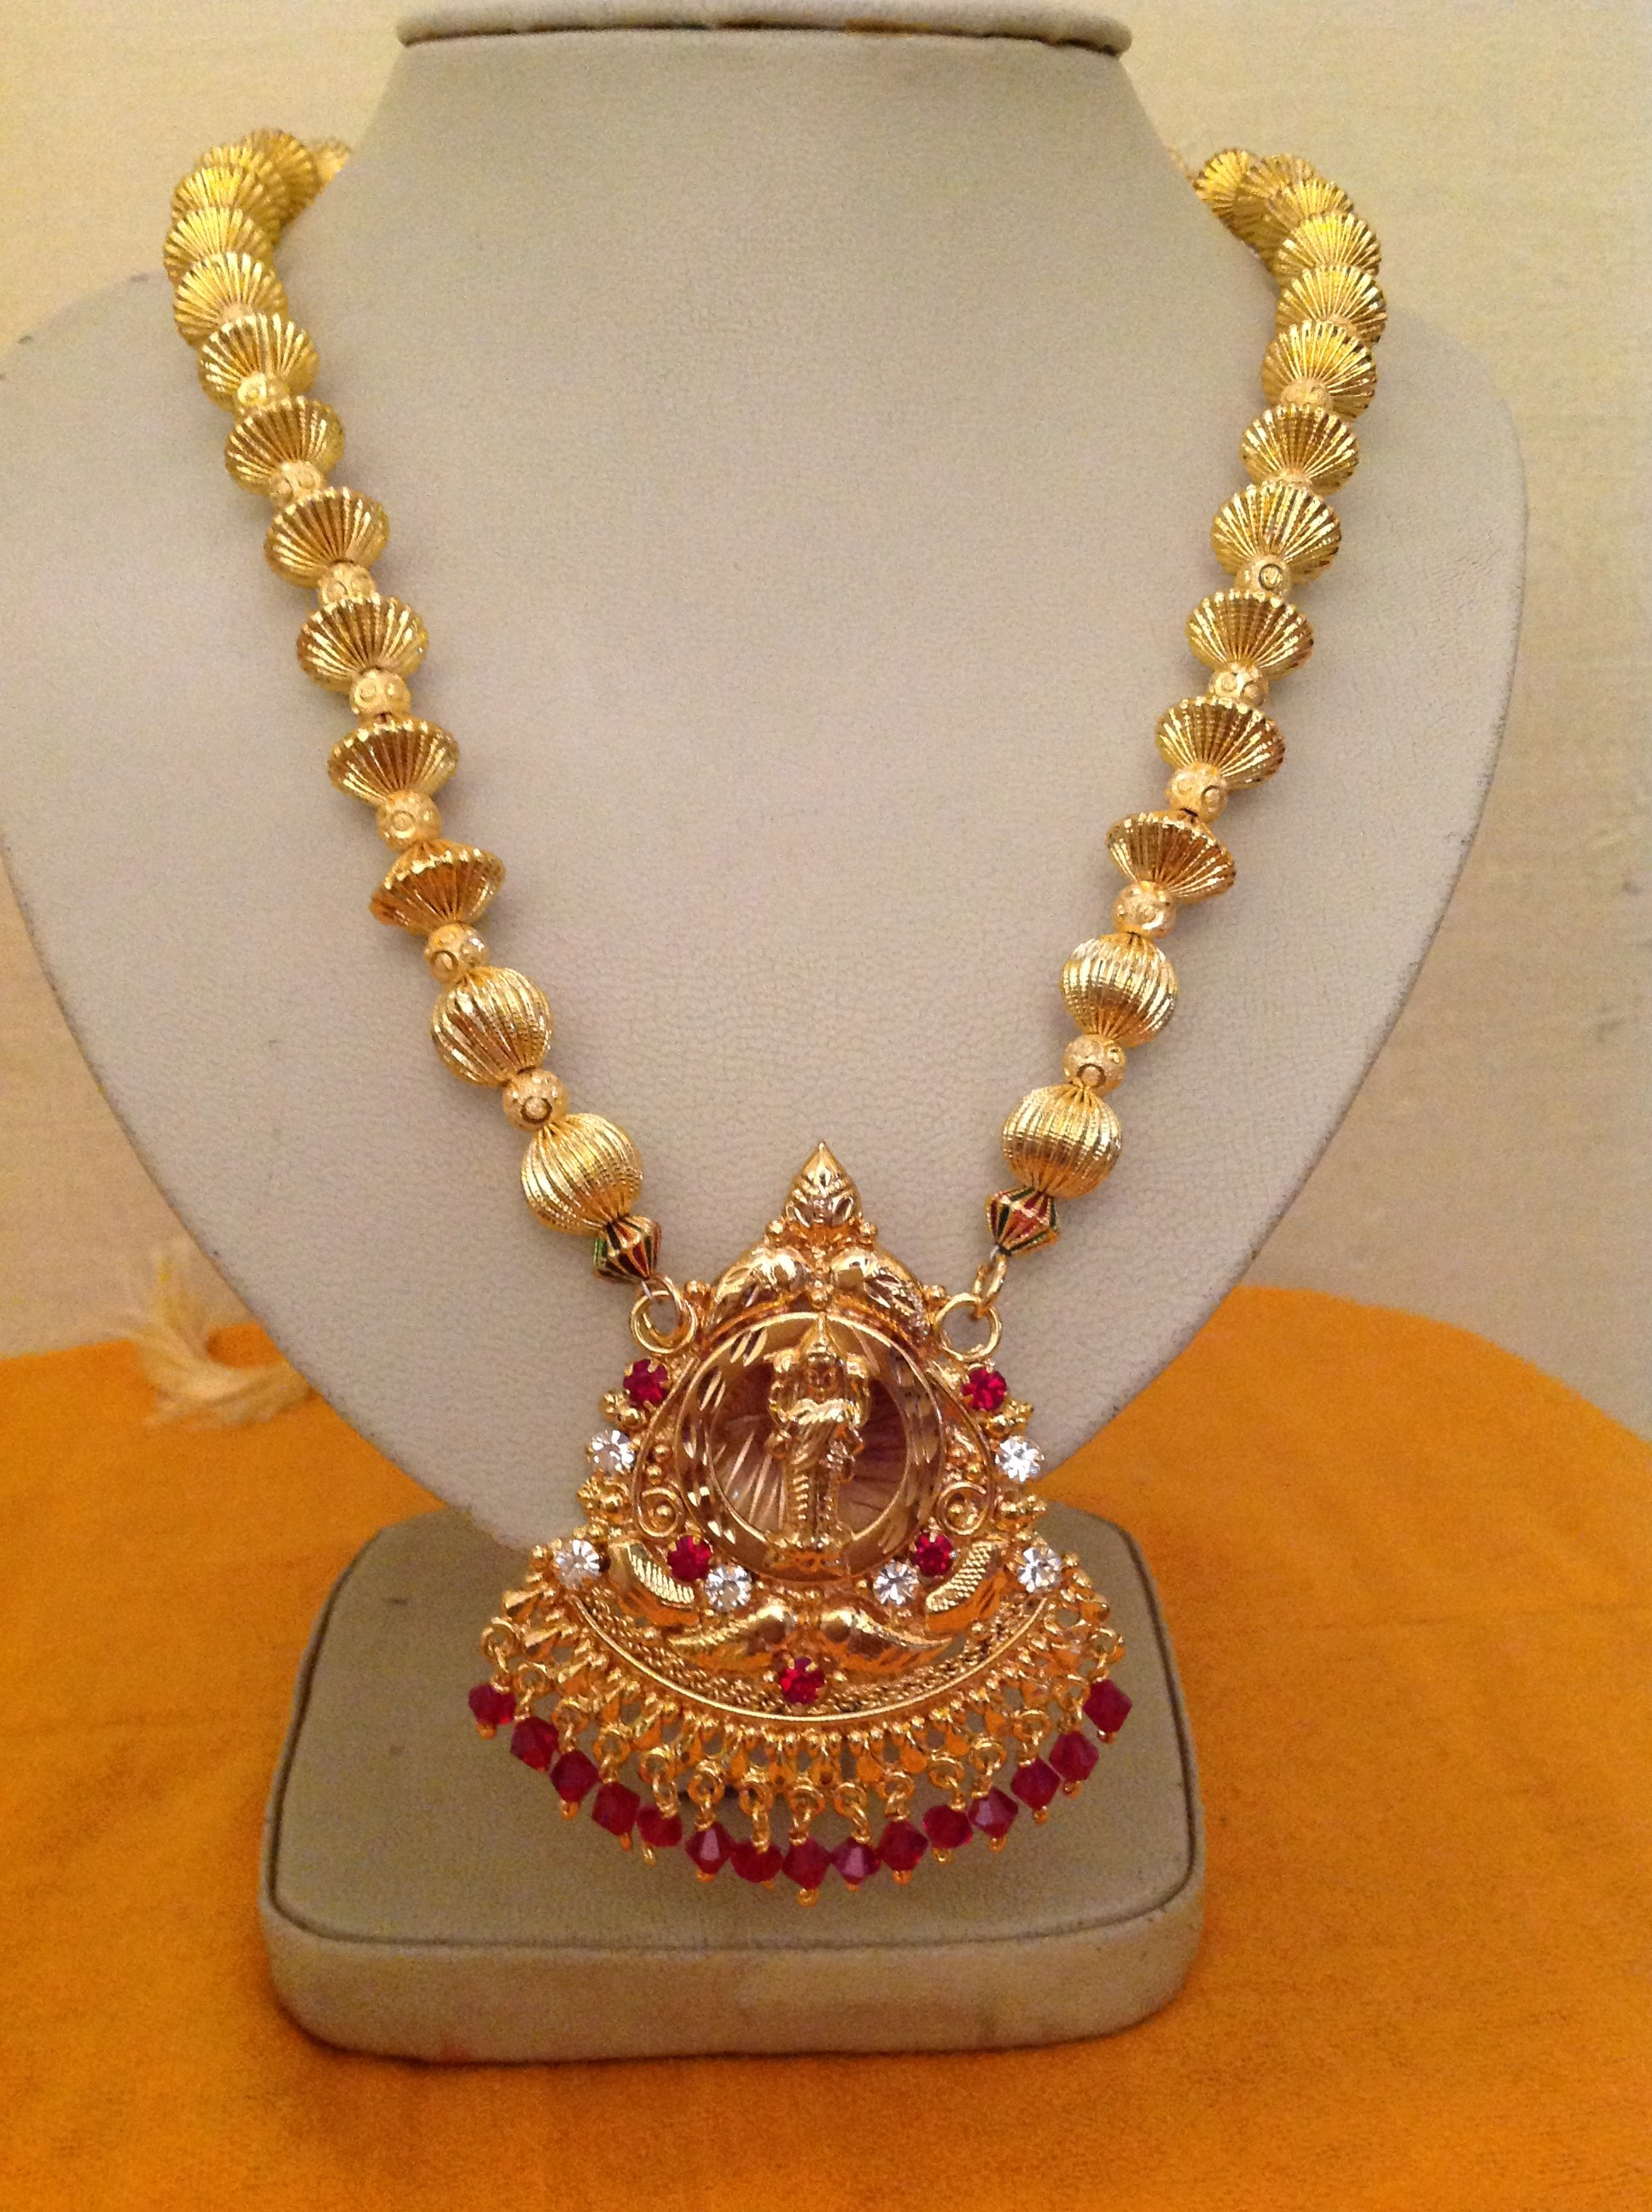 vikas watches replica gold pvt catalogue cheap jewellery chain ltd